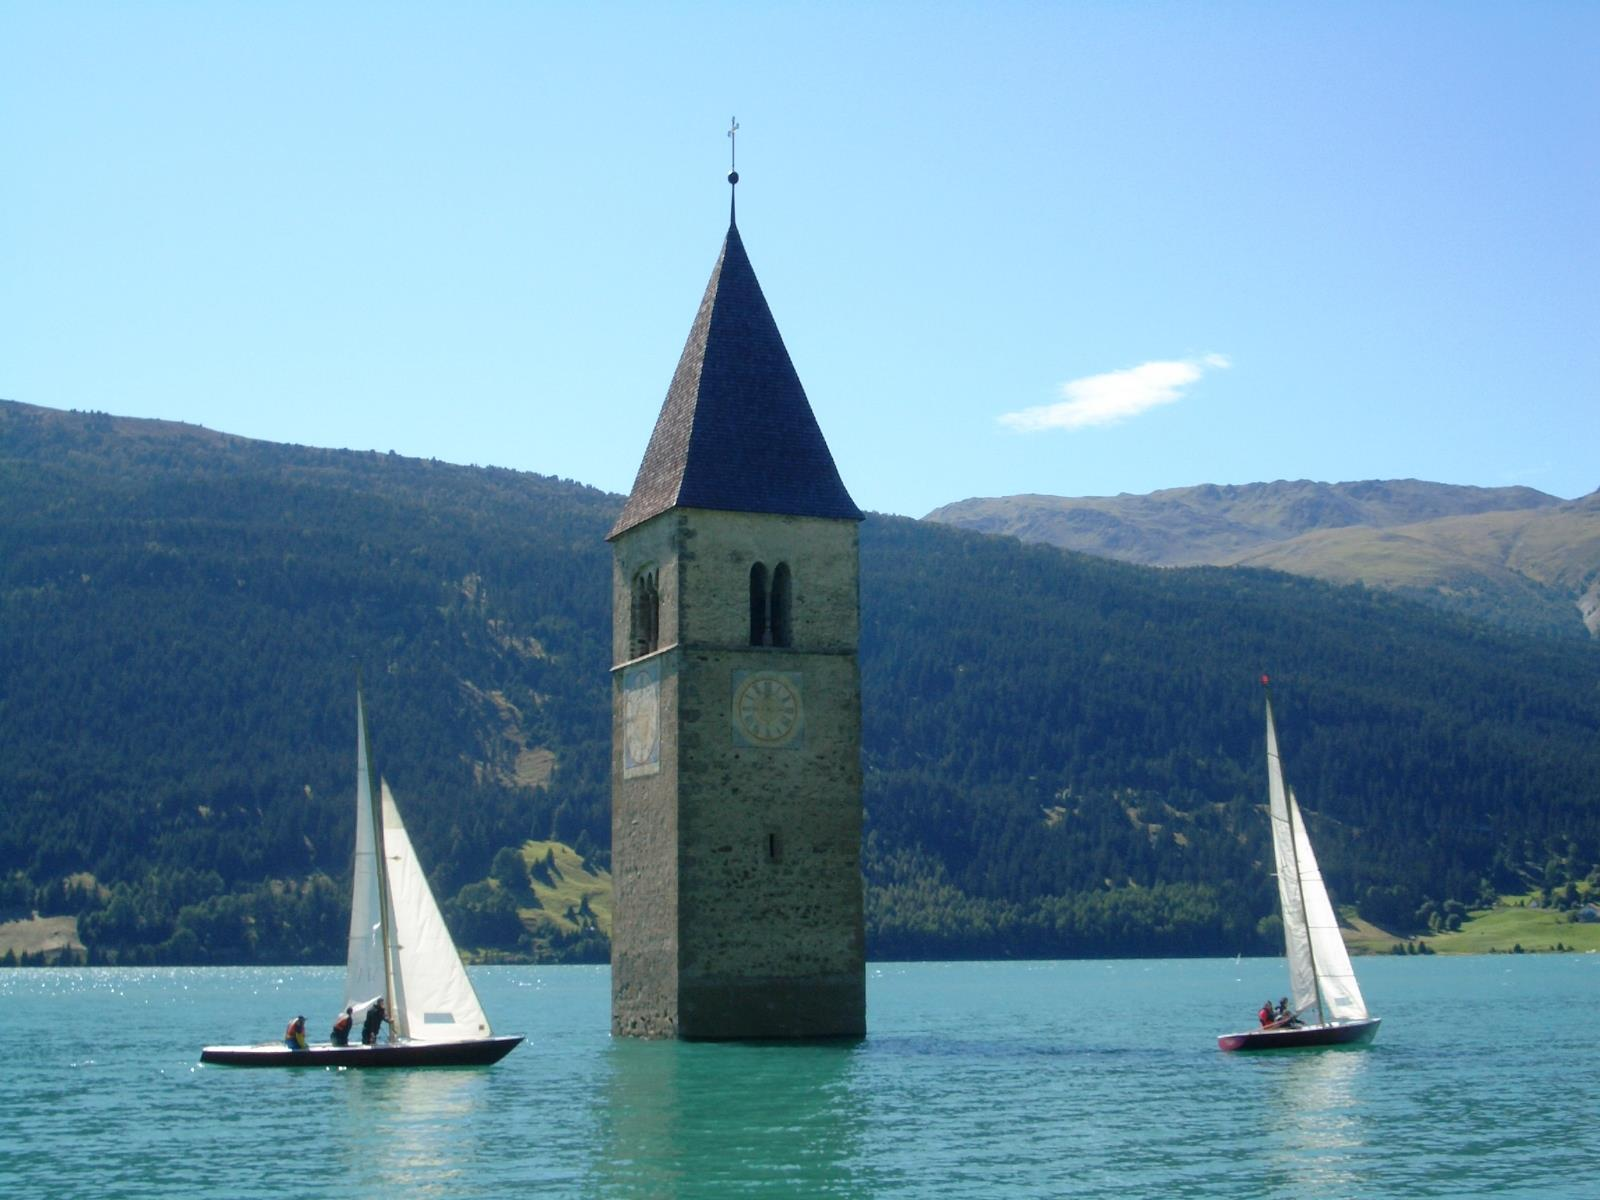 Sailing on the lake Reschensee